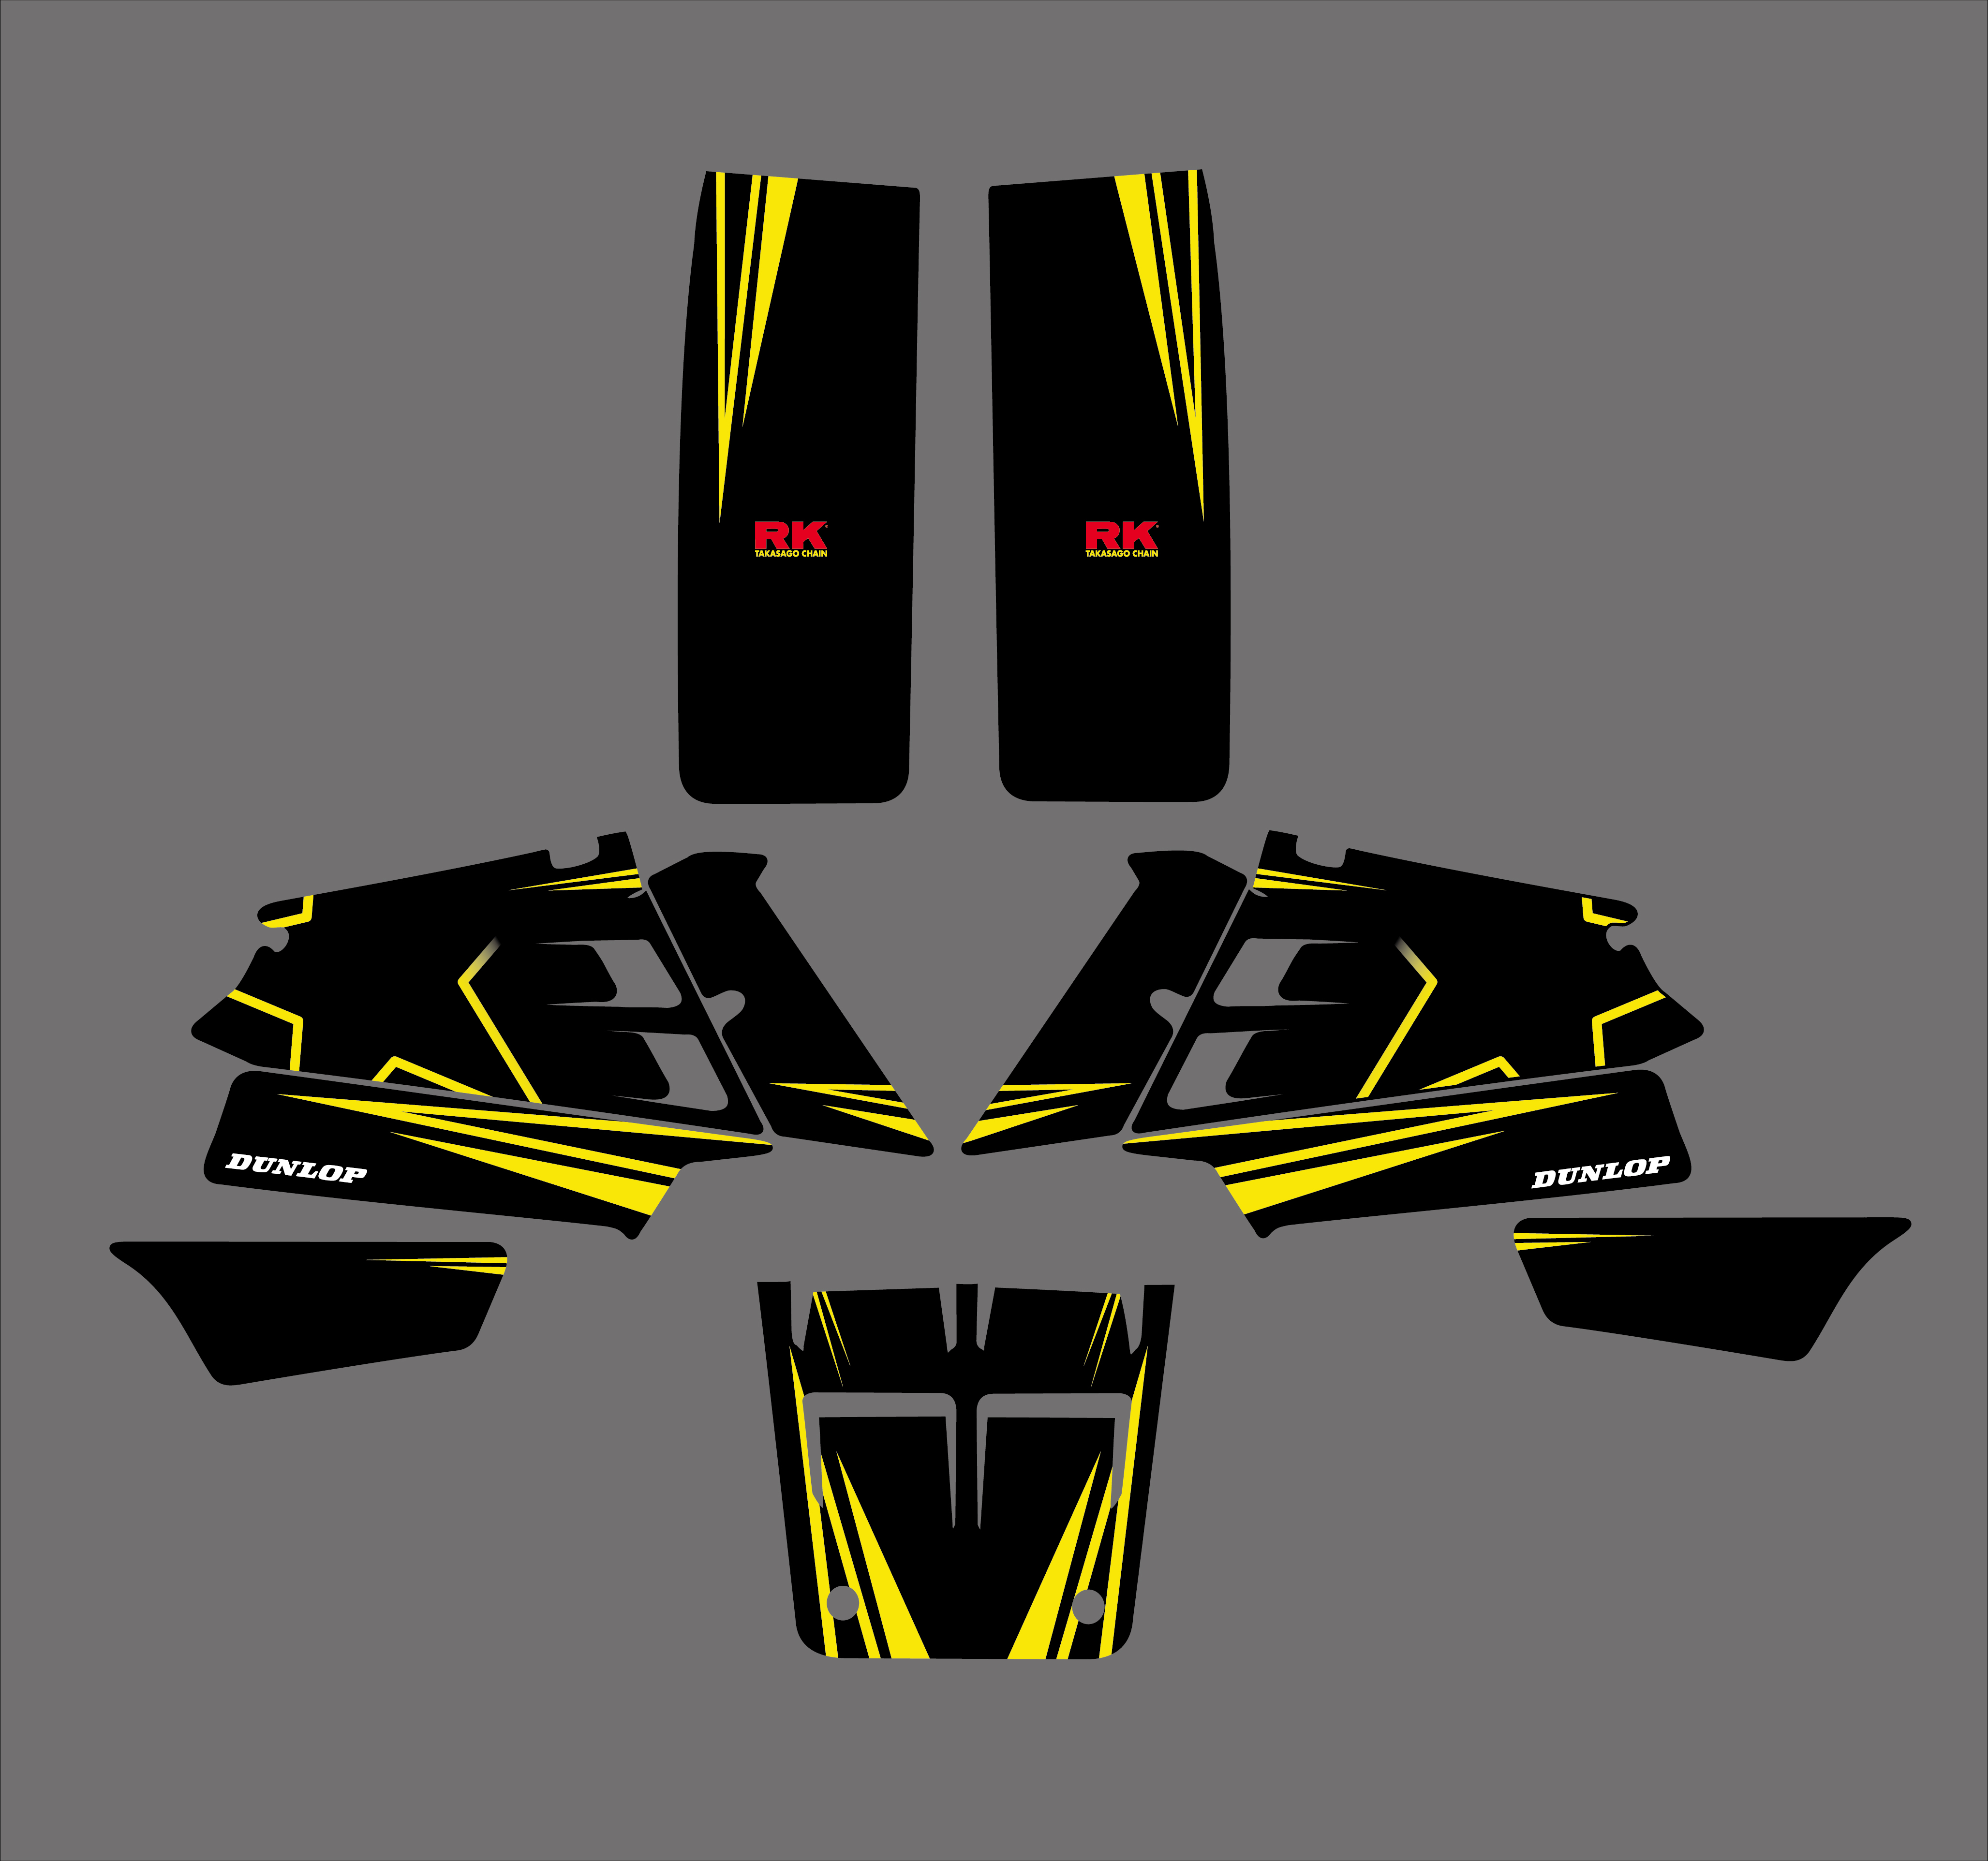 New Style DECALS STICKERS Graphics Kits For Yamaha BANSHEE 350 YFZ350 1987-2002 2003 2004 2005 Moto Decor Accessories Pegatina